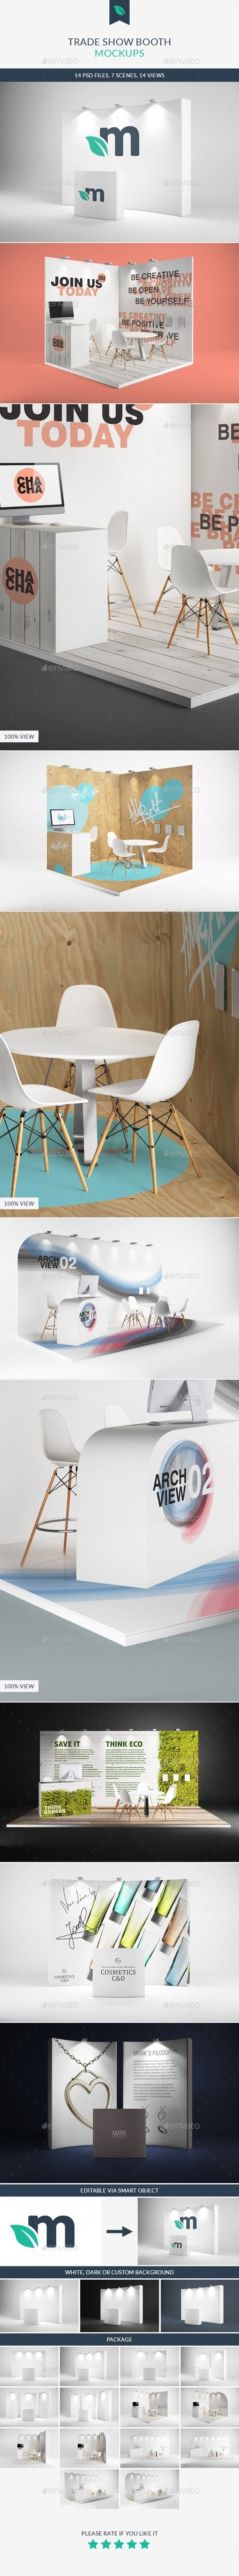 Trade Show Booth Mockups | #tradeshowmockup | Download: http://graphicriver.net/item/trade-show-booth-mockups/9273909?ref=ksioks